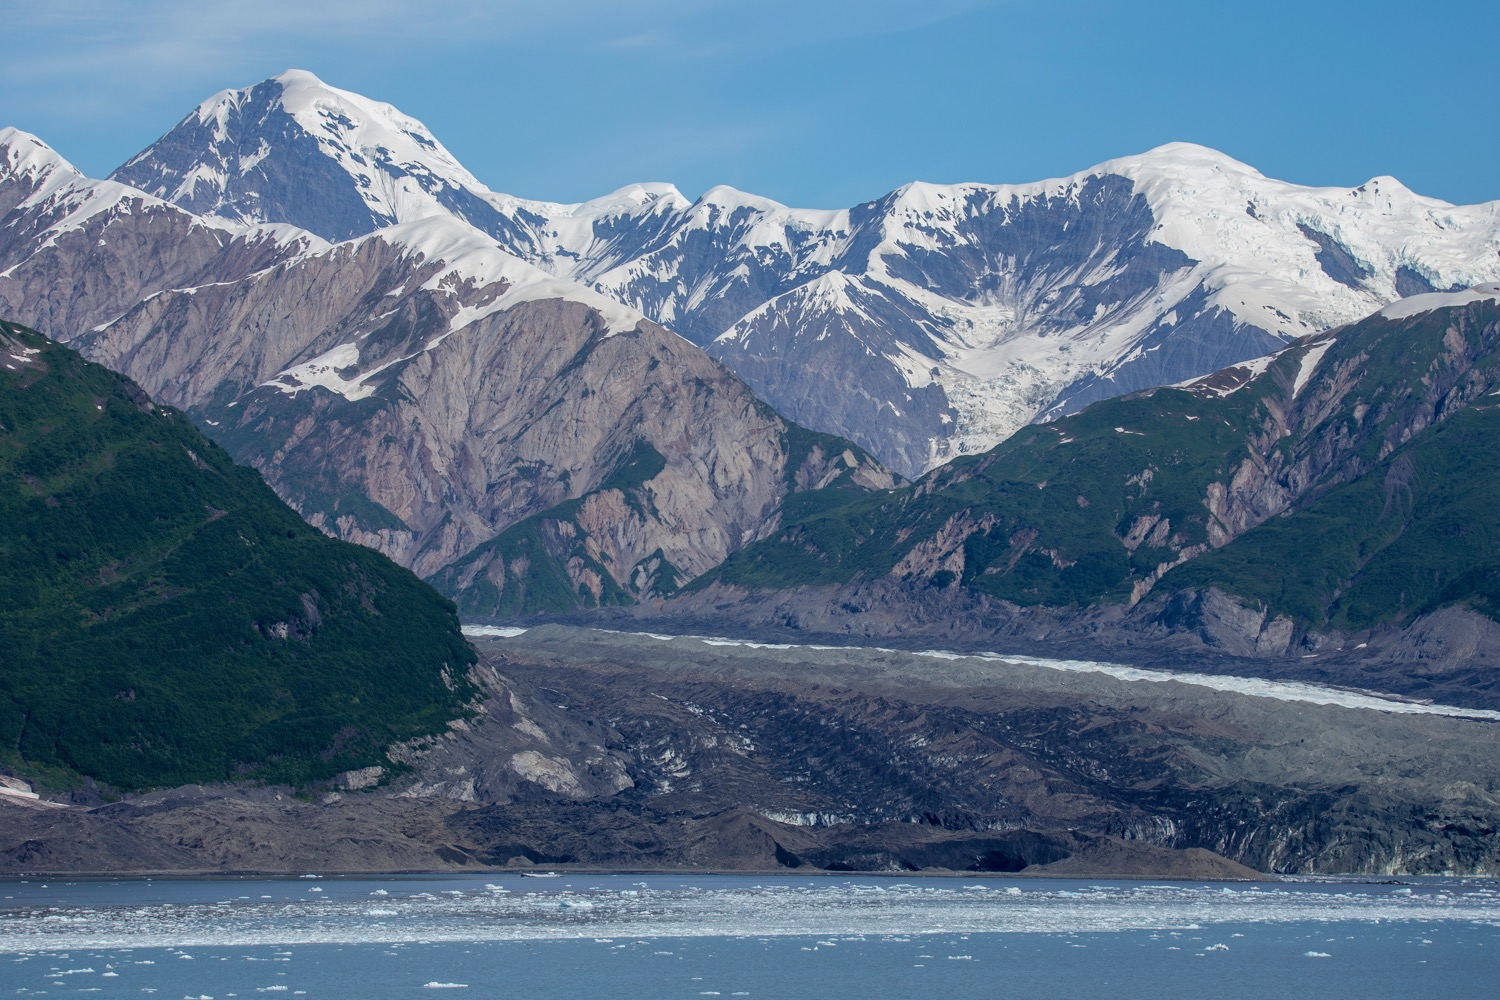 One of the other glaciers that has just about dissappeared.